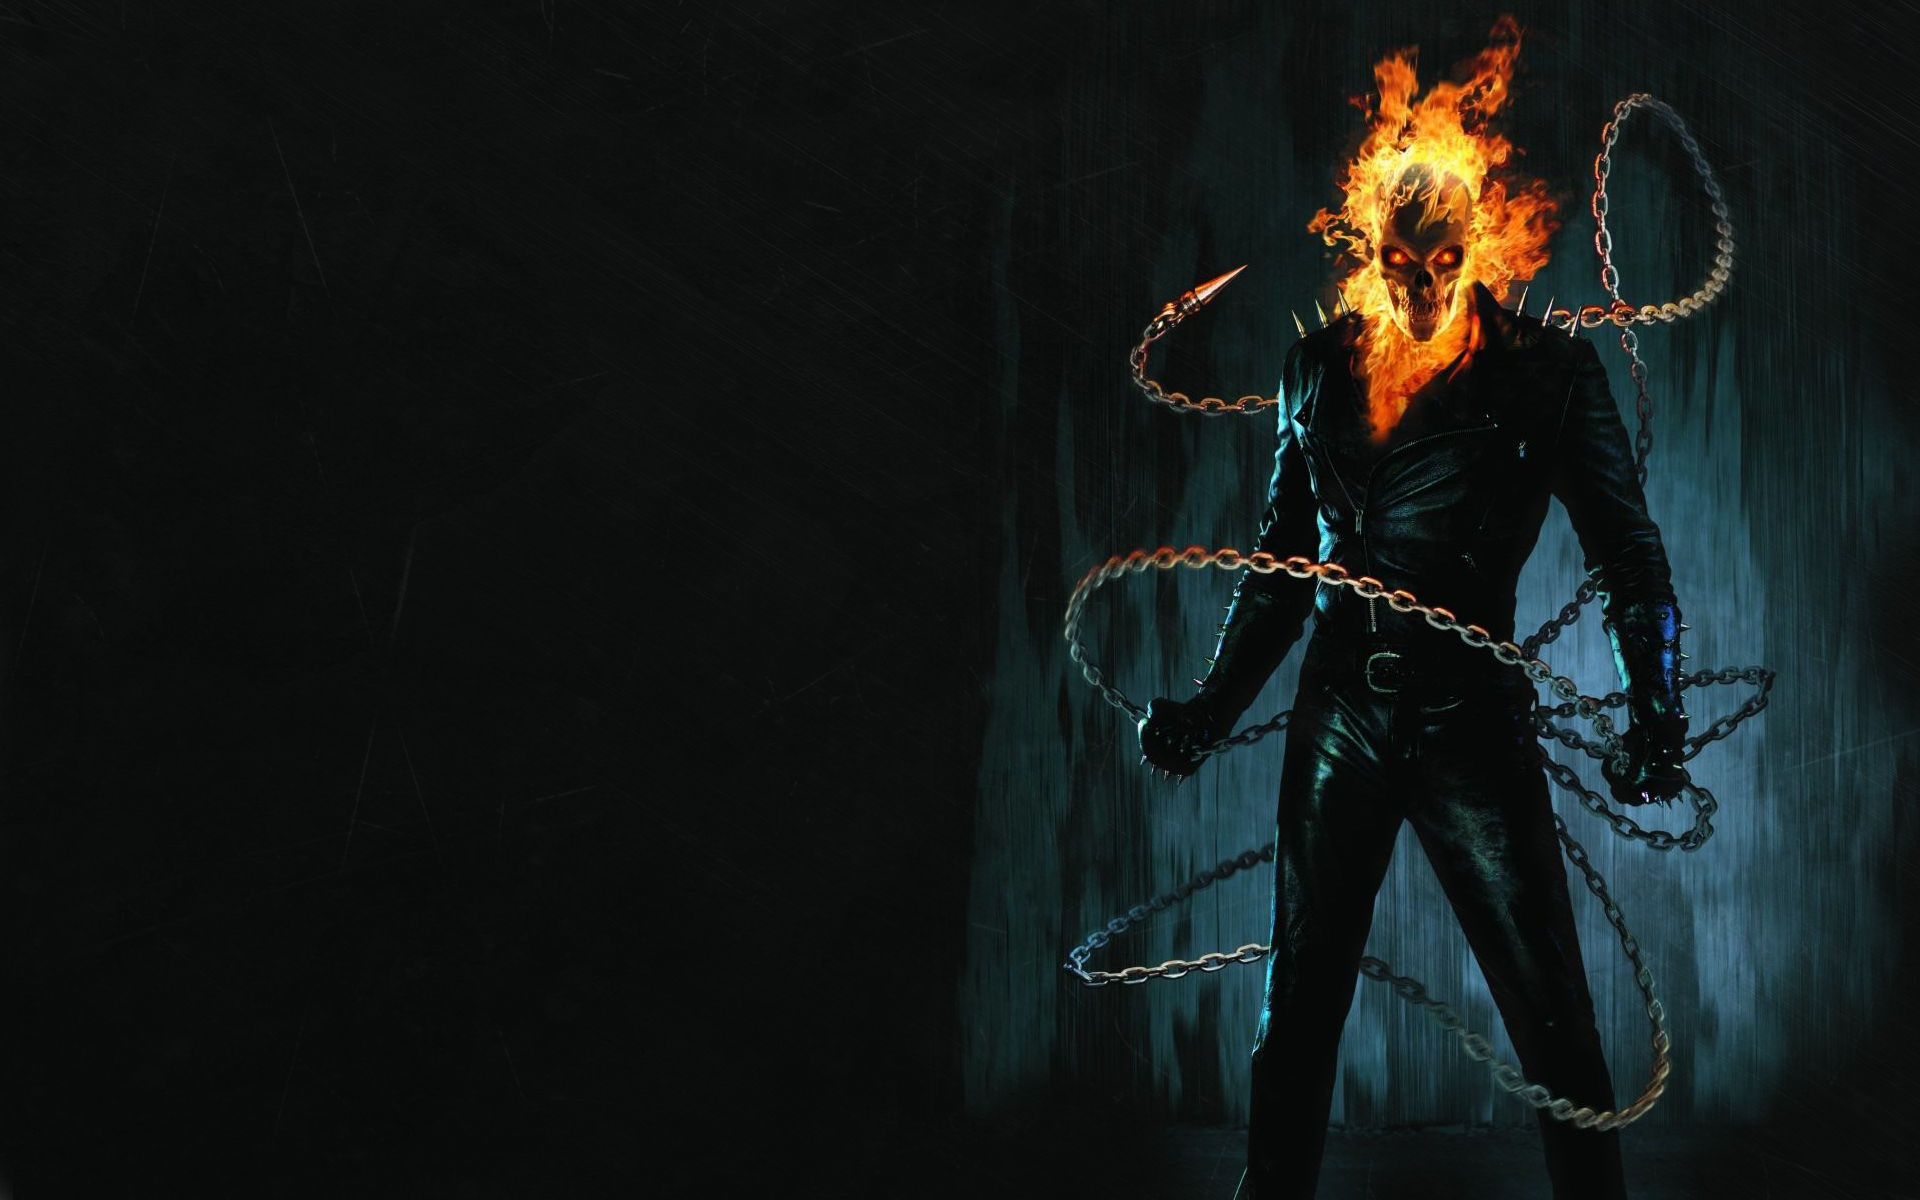 Ghost Rider comics movies dark skull skeleton fire wallpaper 1920x1200